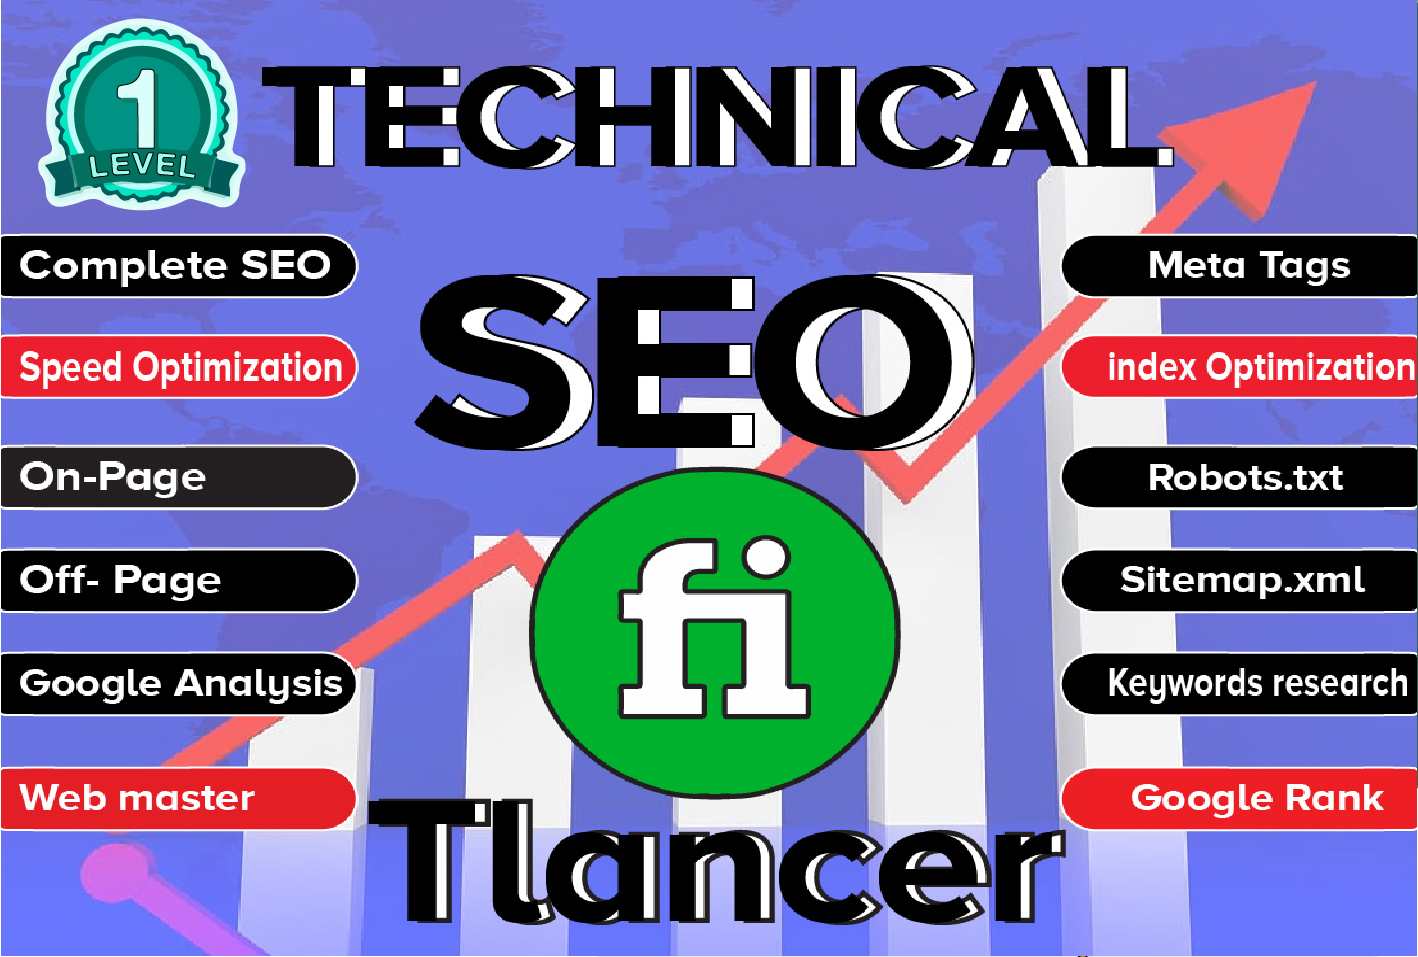 Onsite Onpage complete Technical SEO,  Speed Optimization Google ranking,  keyword research,  meta tags